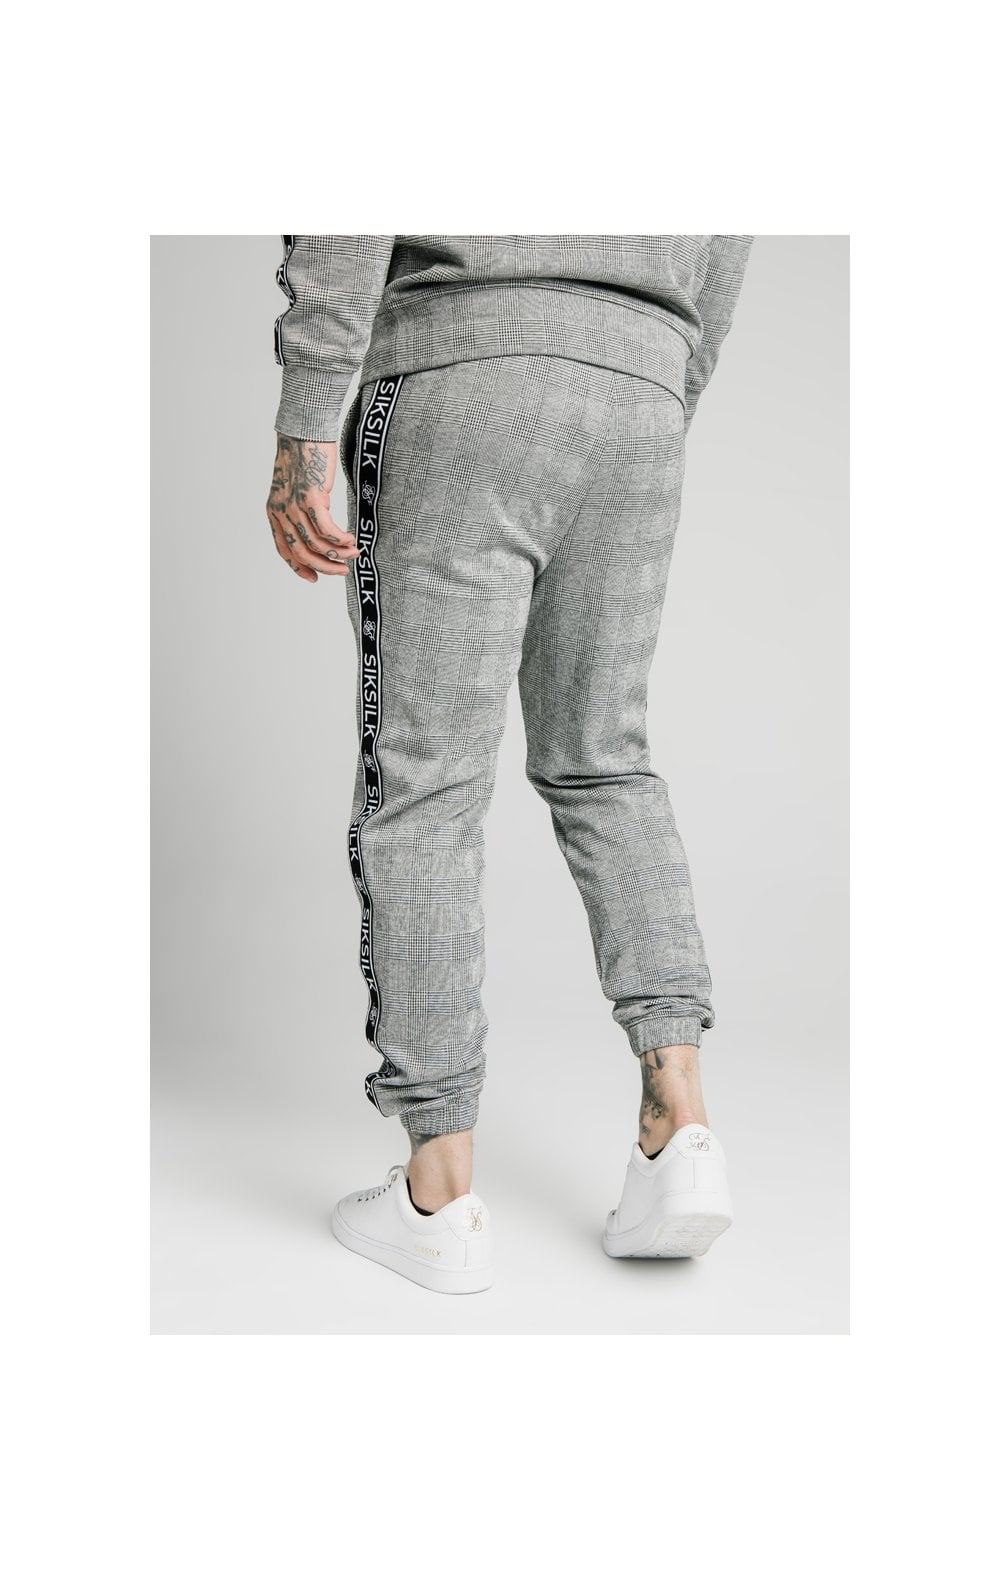 SikSilk Dog Tooth Check Chuffed Pant - Black & White (1)